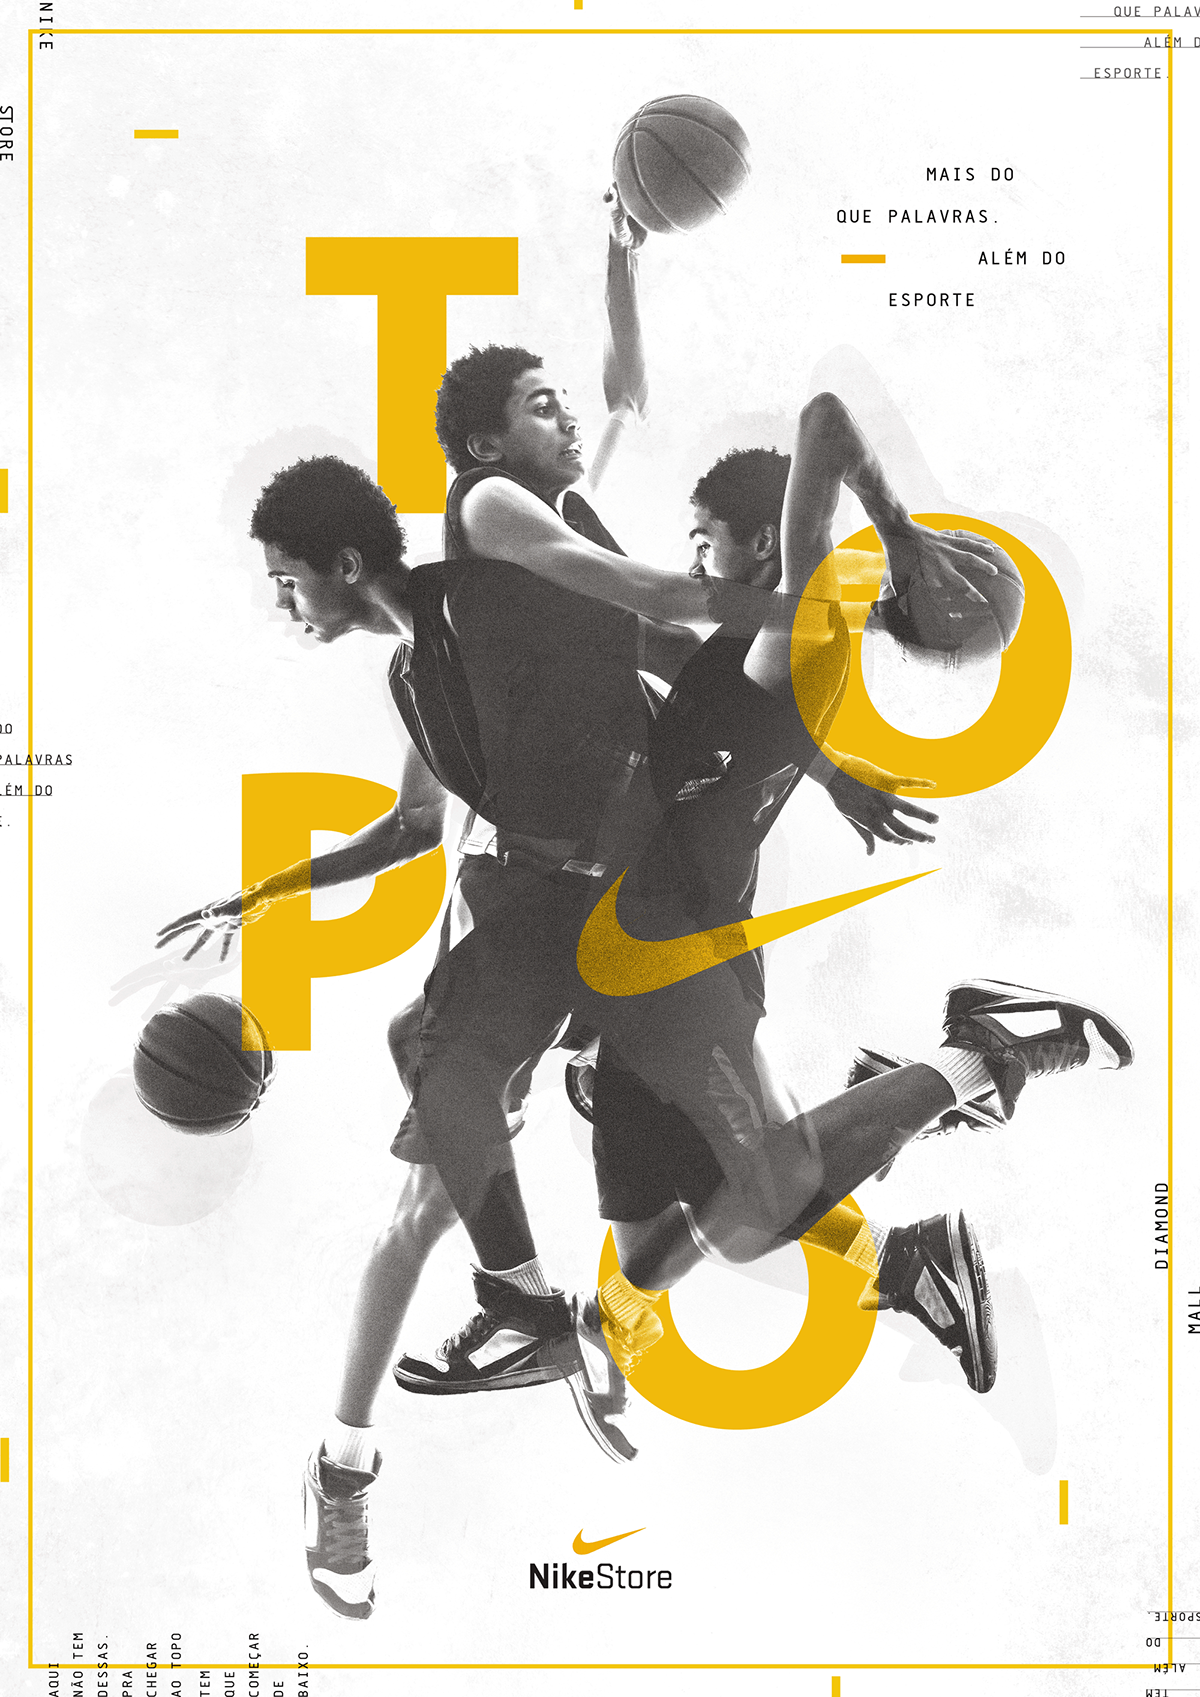 Nike Store - Poster Series on Behance | SPORTS | Sports ...